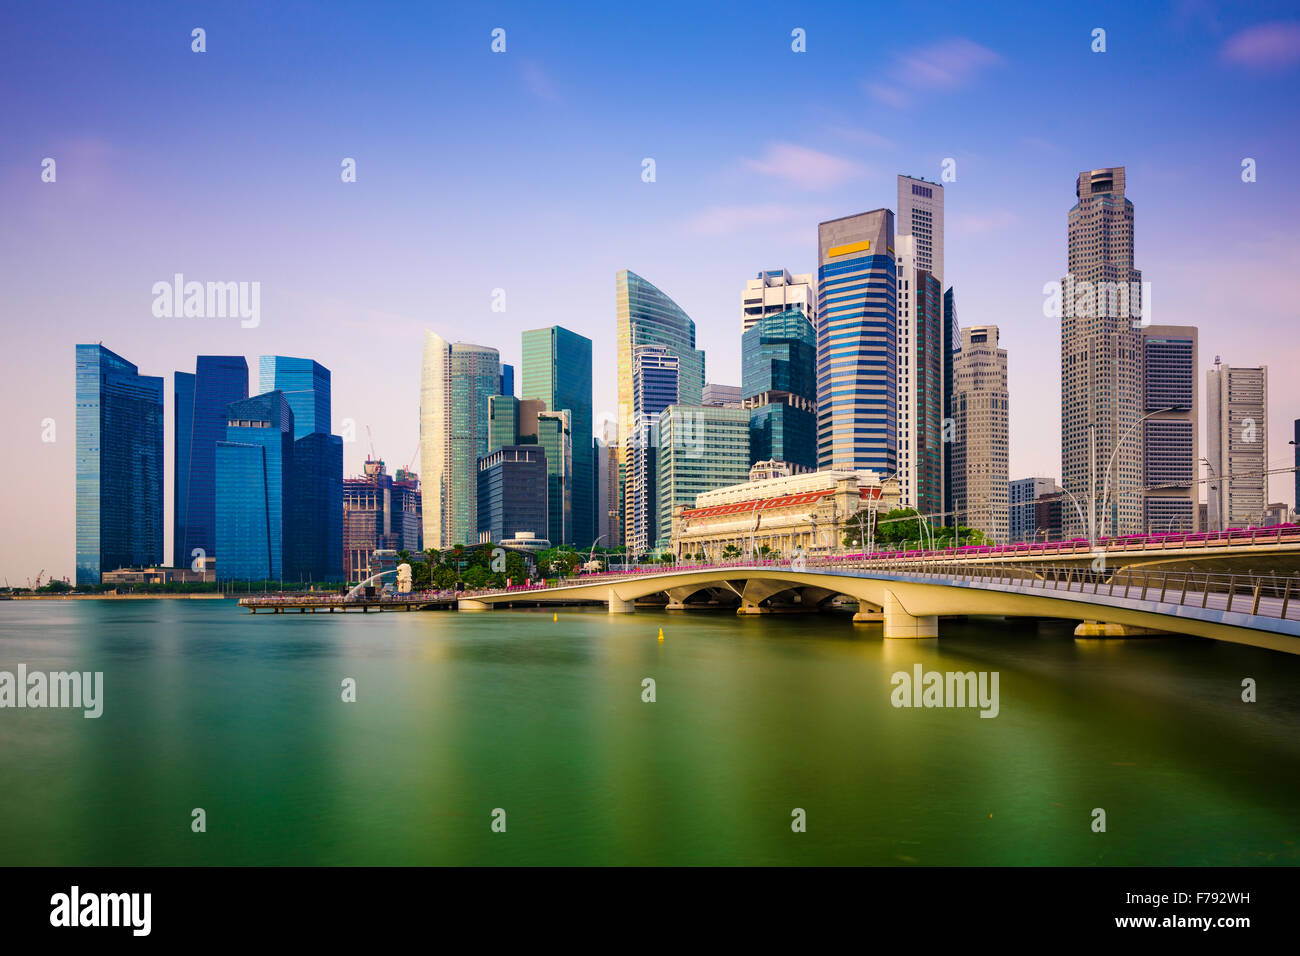 Skyline von Singapur an der Marina Bay. Stockbild